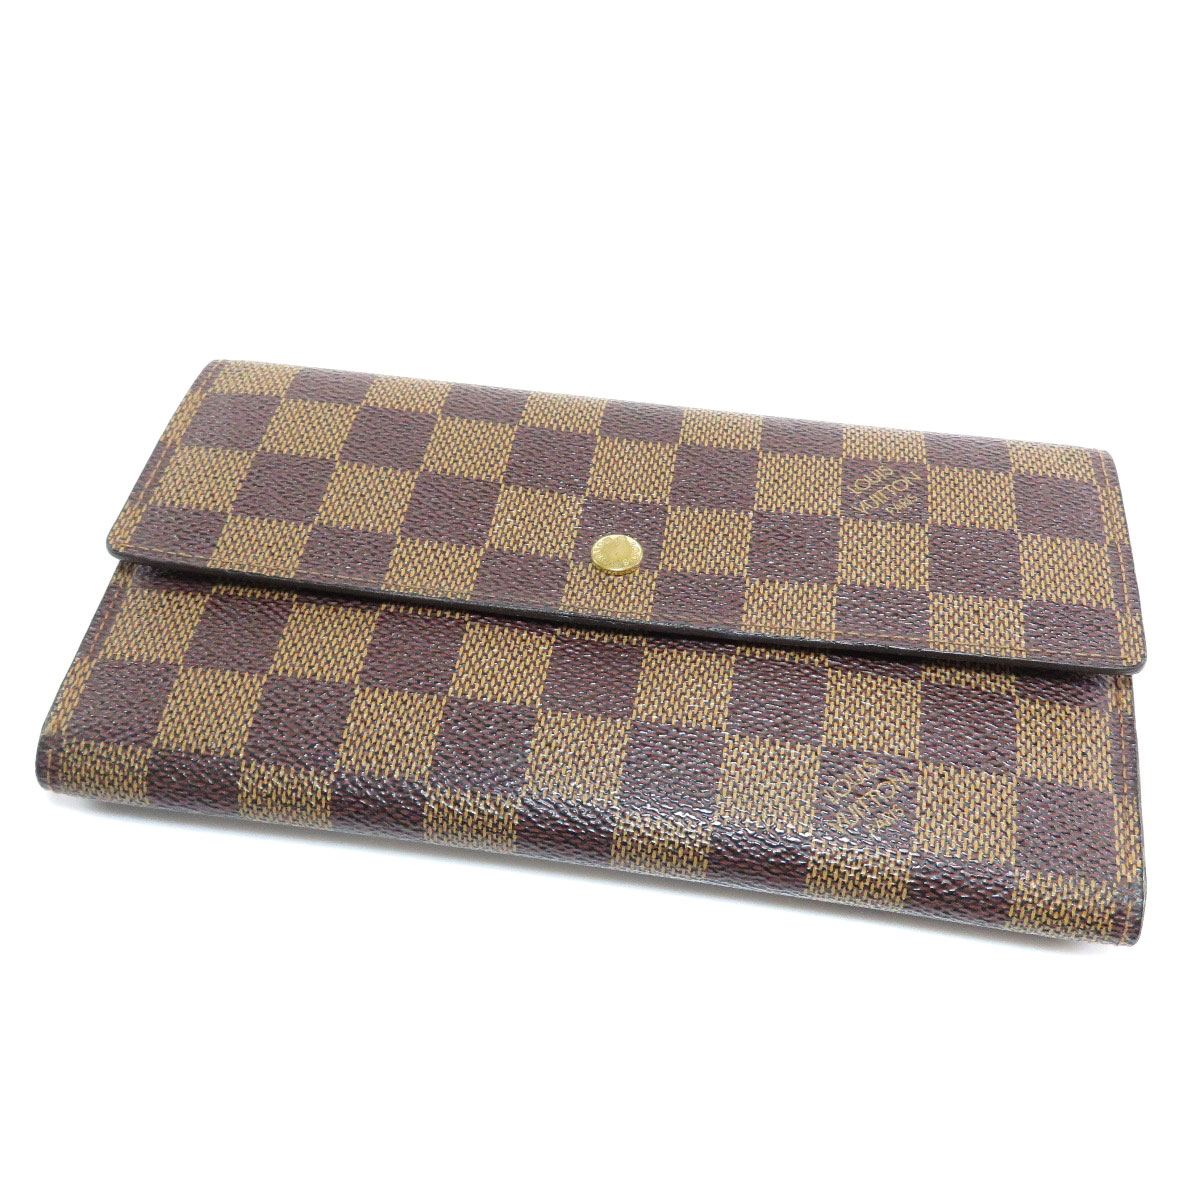 new concept 37566 3eb61 LOUIS VUITTON 【LOUIS VUITTON】 N61217 purse (with Coin Pocket) Damier Canvas  Ladies ー The best place to buy Brand Bags Watches Jewelry, Brand Bargain